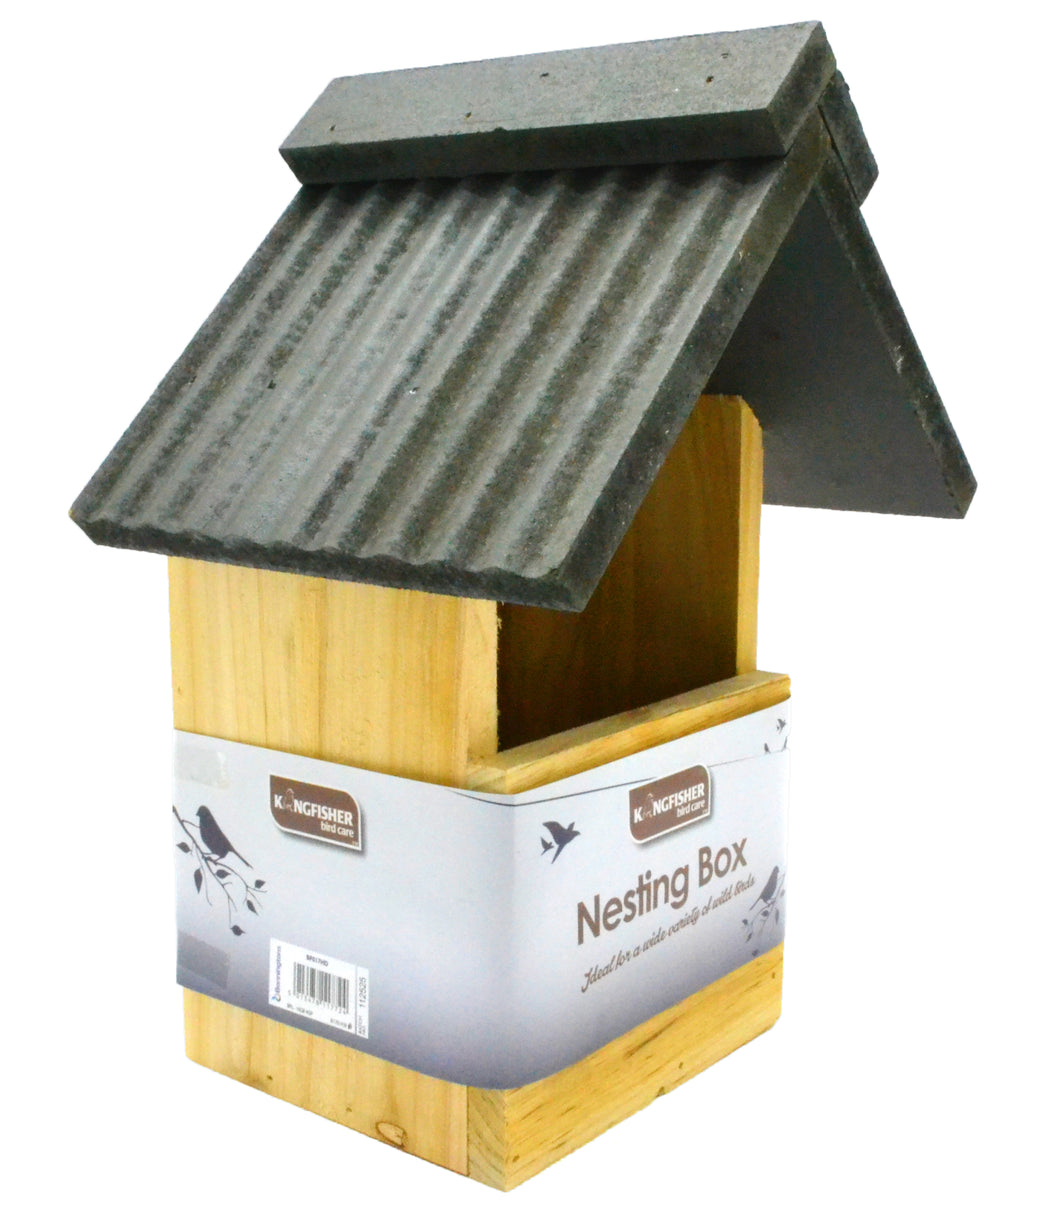 Kingfisher Deluxe Birdhouse nesting box for small garden song birds